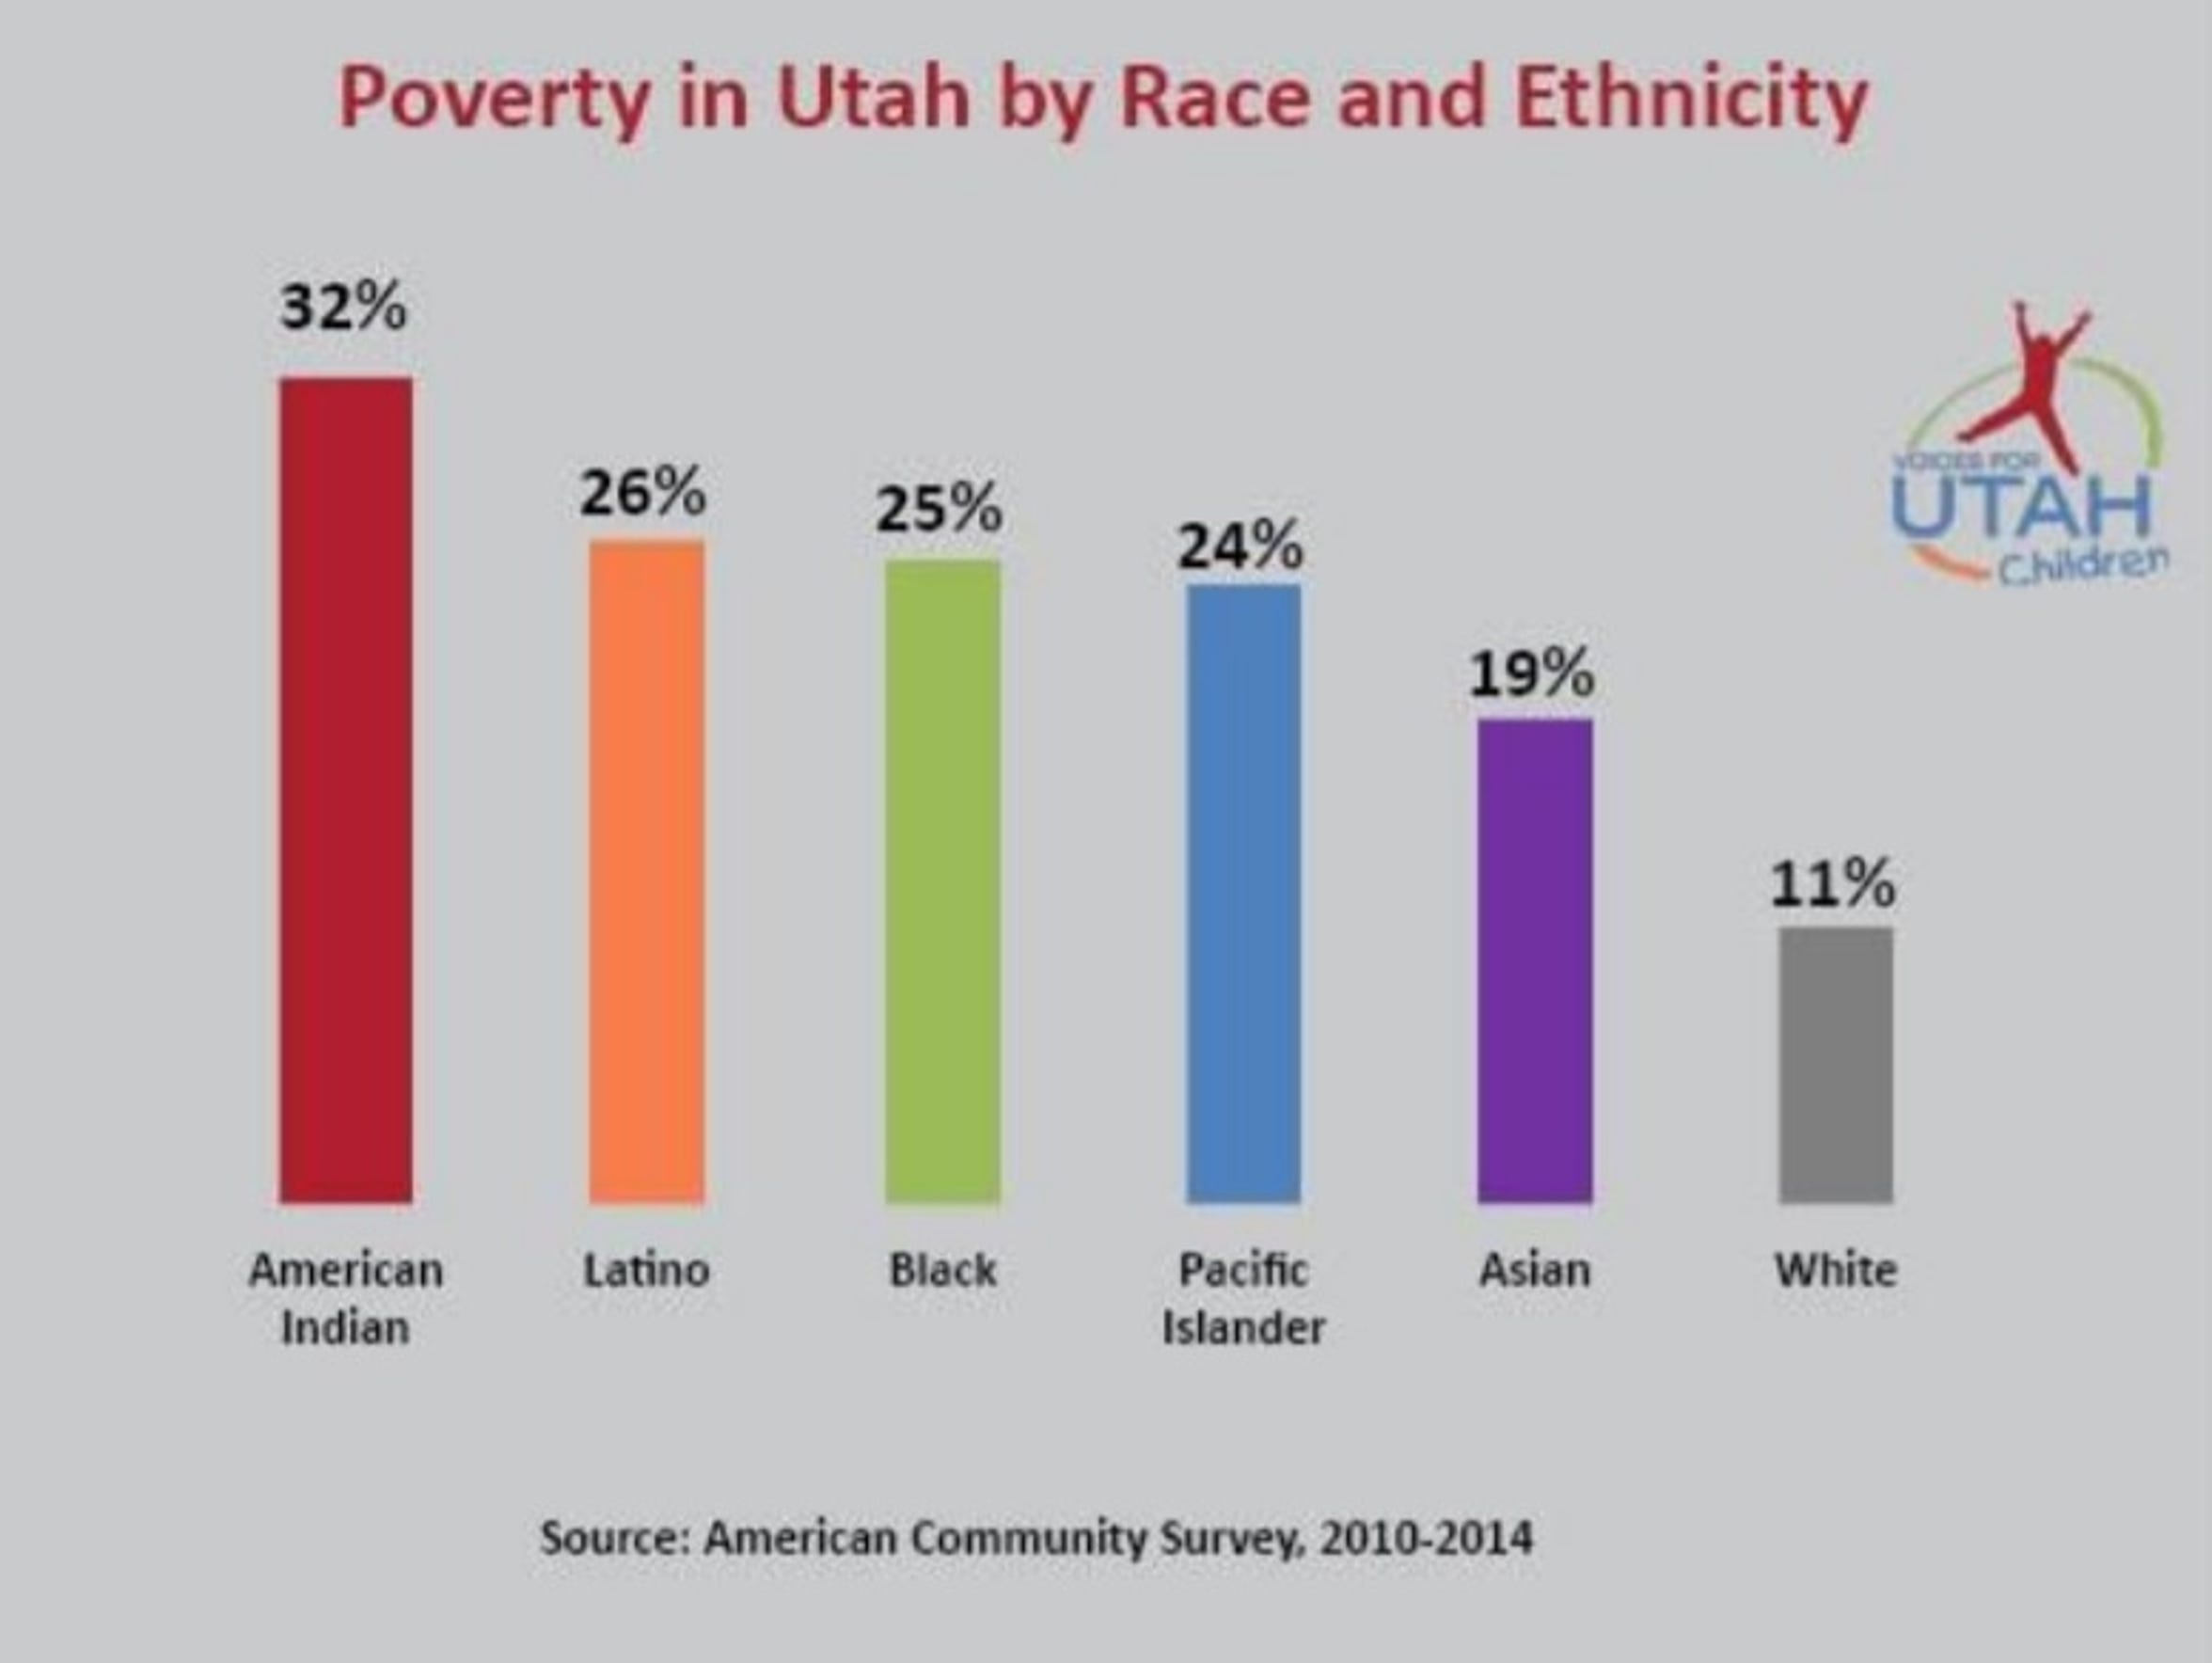 Poverty in Utah, broken down by Race and Ethnicity.